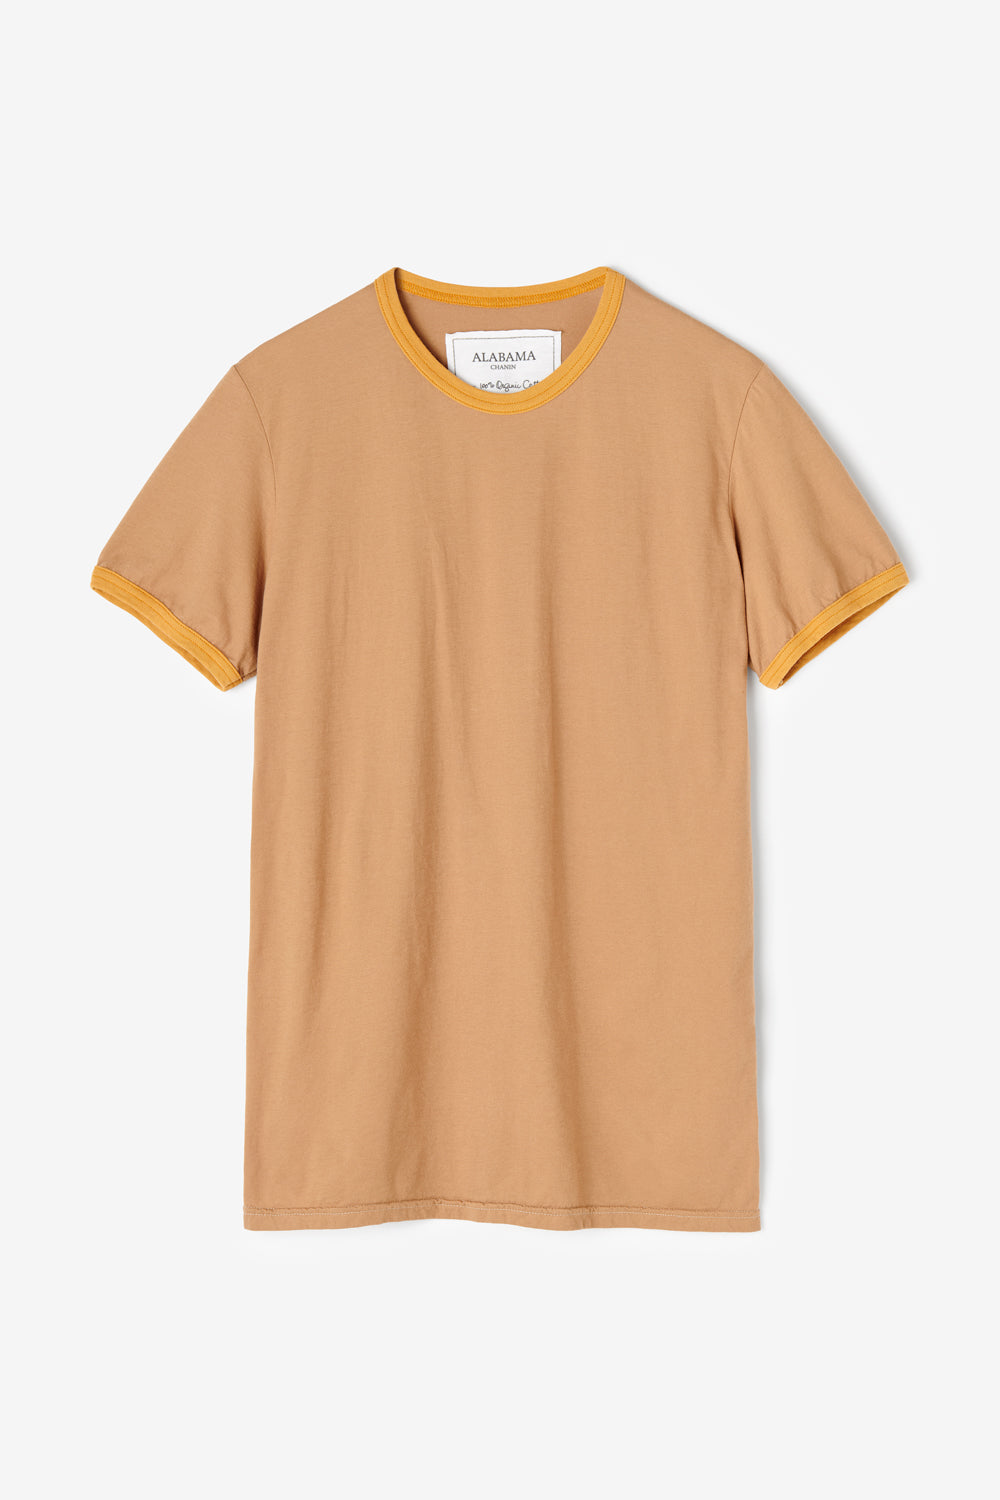 Alabama Chanin 100% Organic Cotton T-Shirt in Camel with Gold Ringer